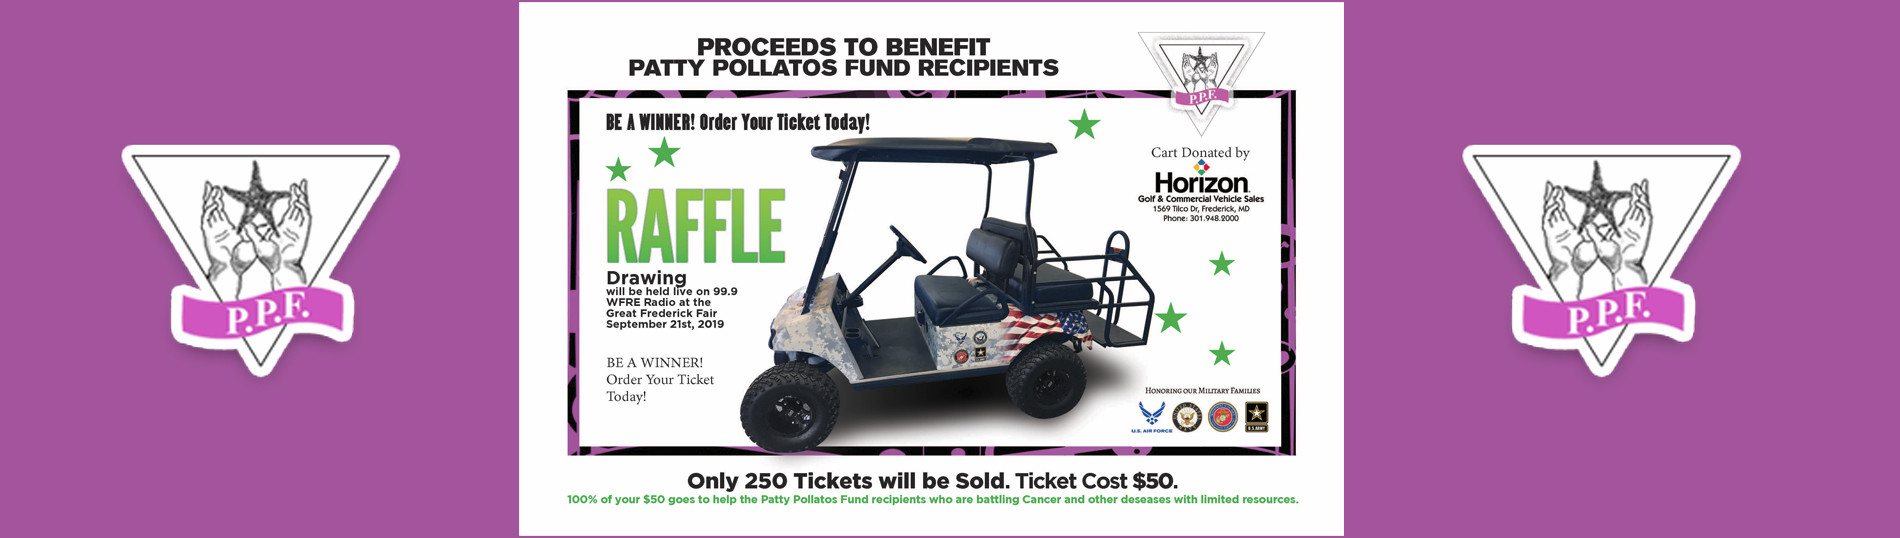 golf cart raffle